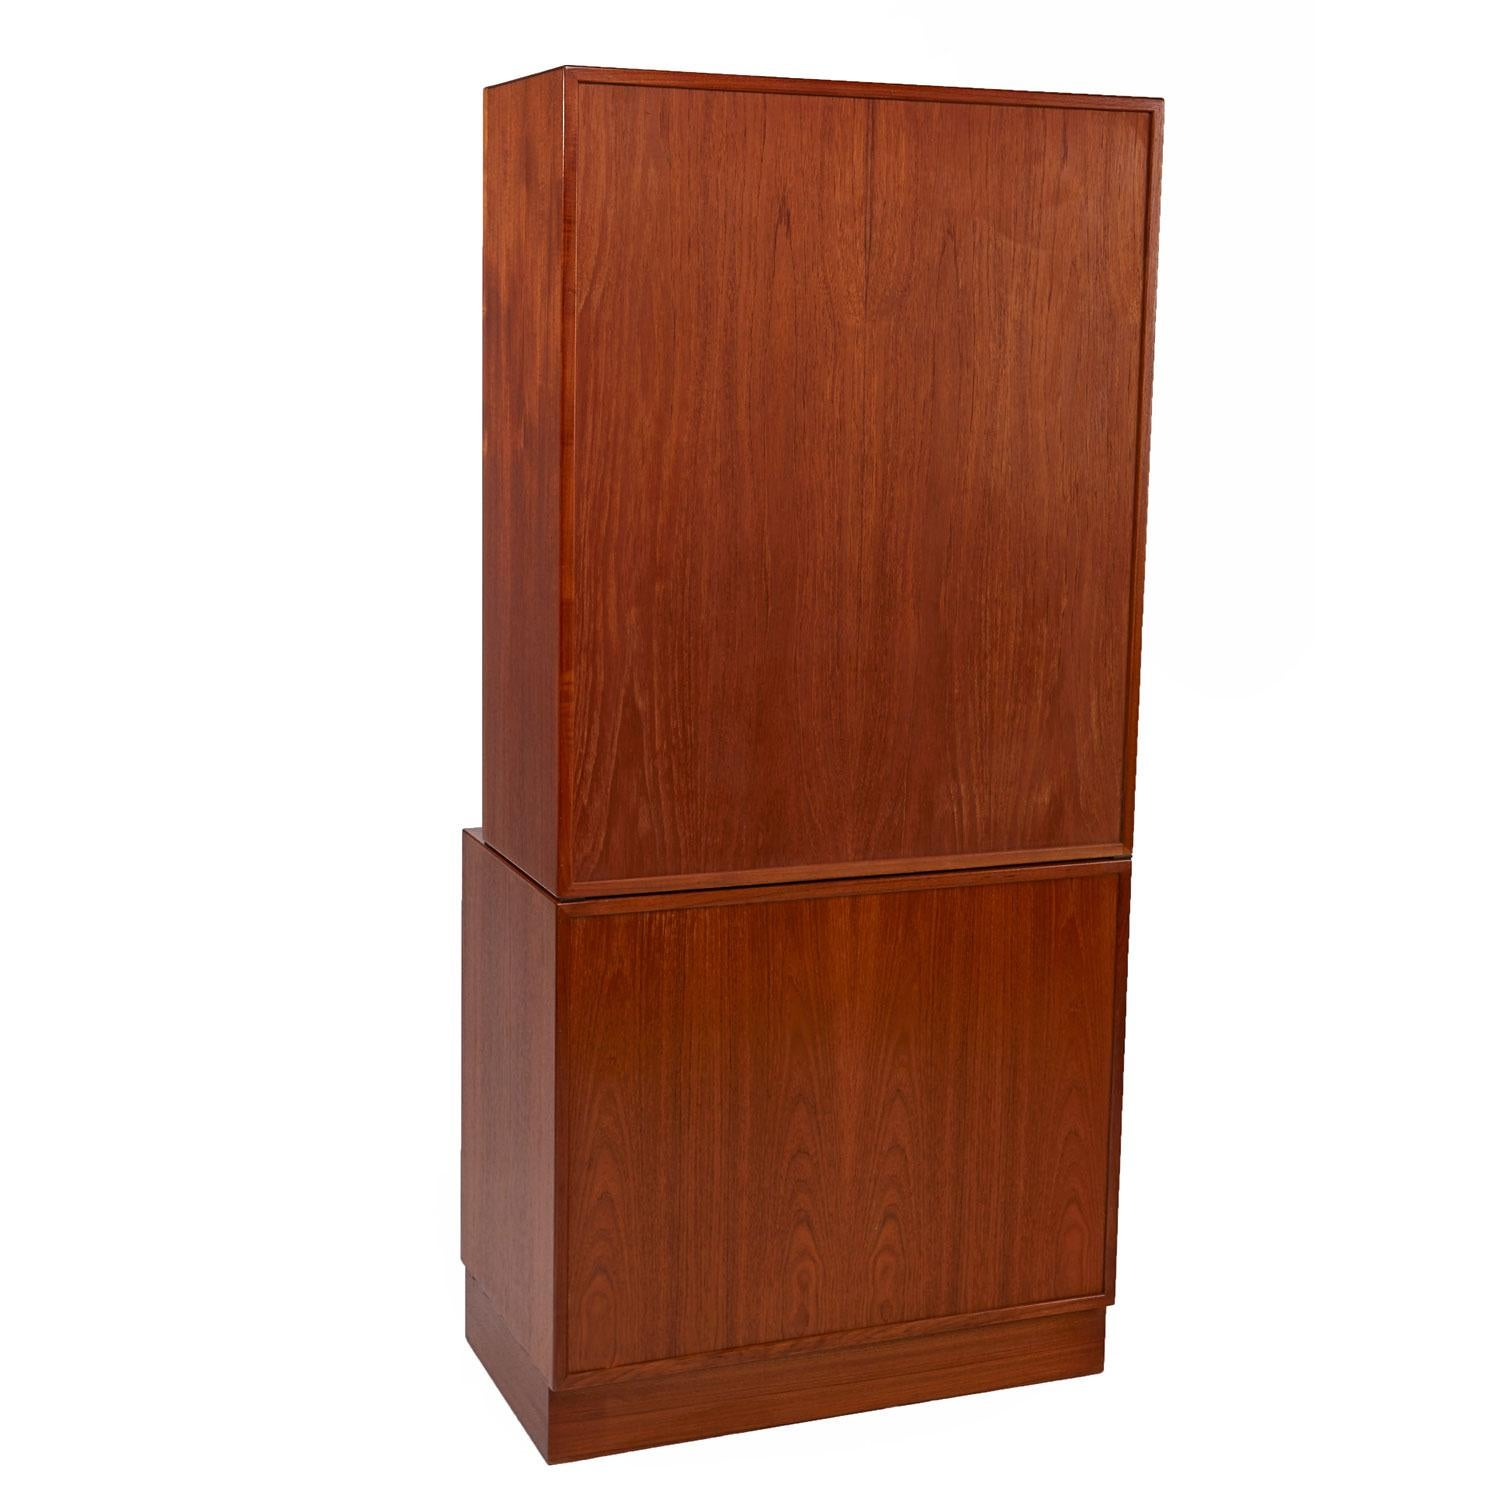 Danish Teak Bookshelf Hutch Cabinet By Lyby Mobler Circa 1950s For Sale At 1stdibs